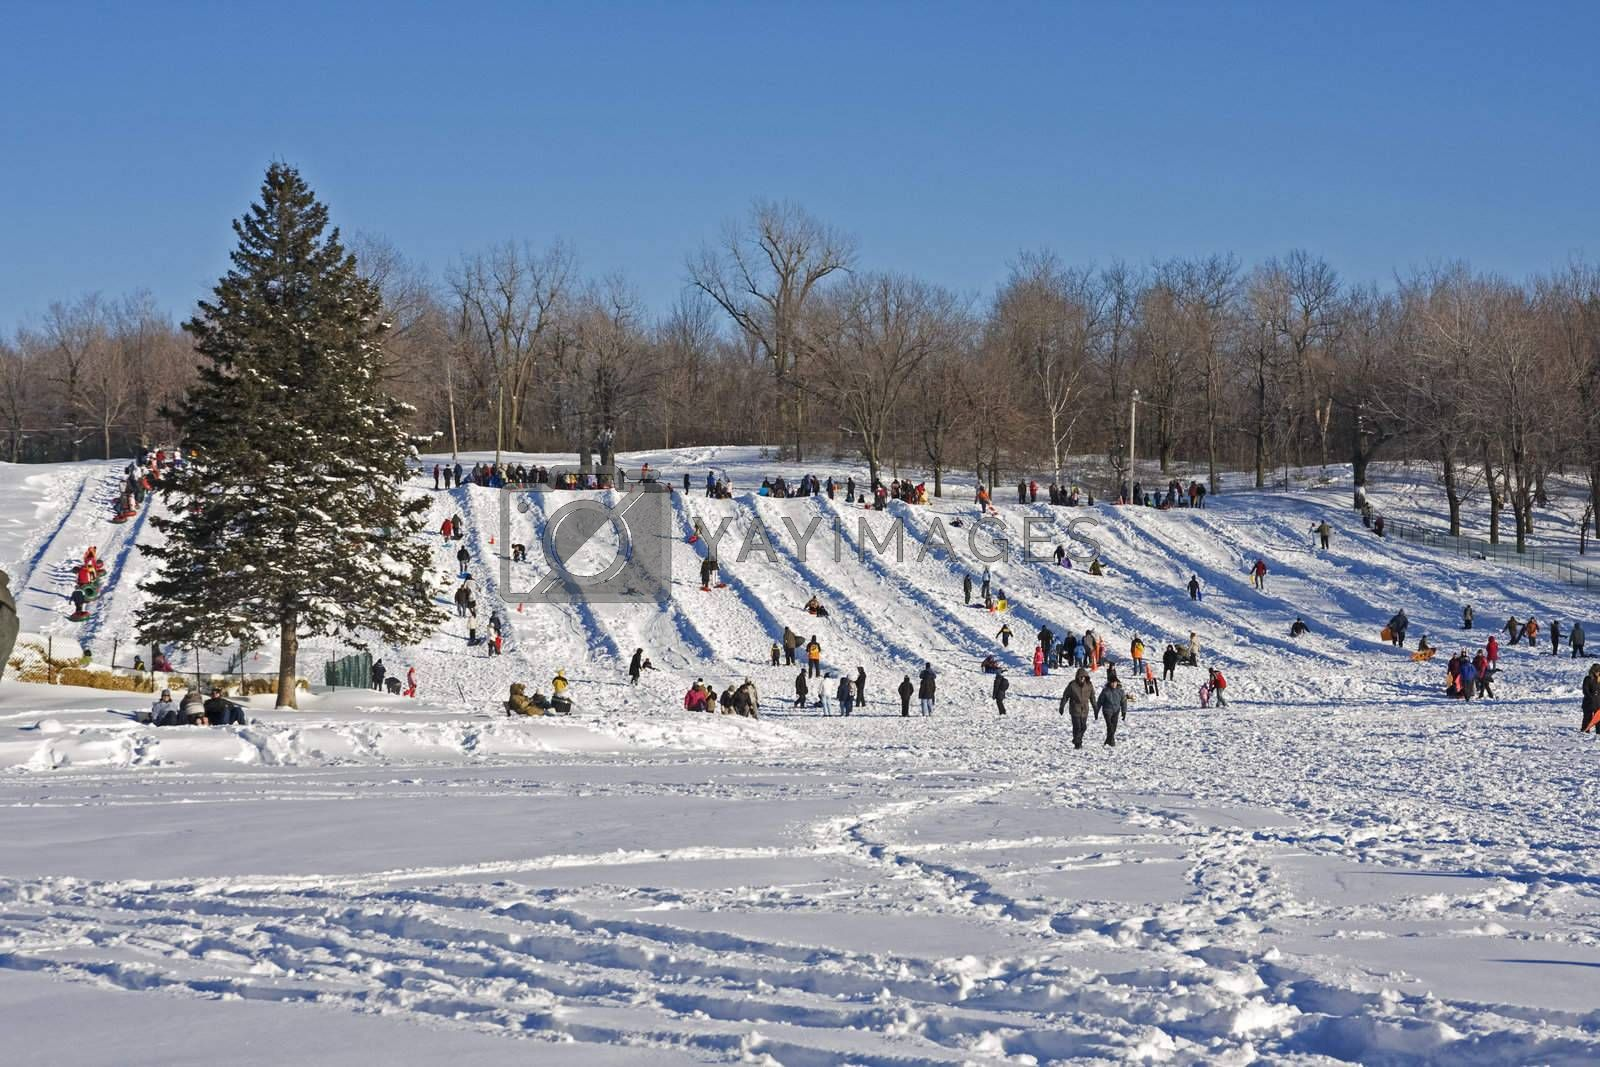 Urban winter scene, with people sliding on a slope